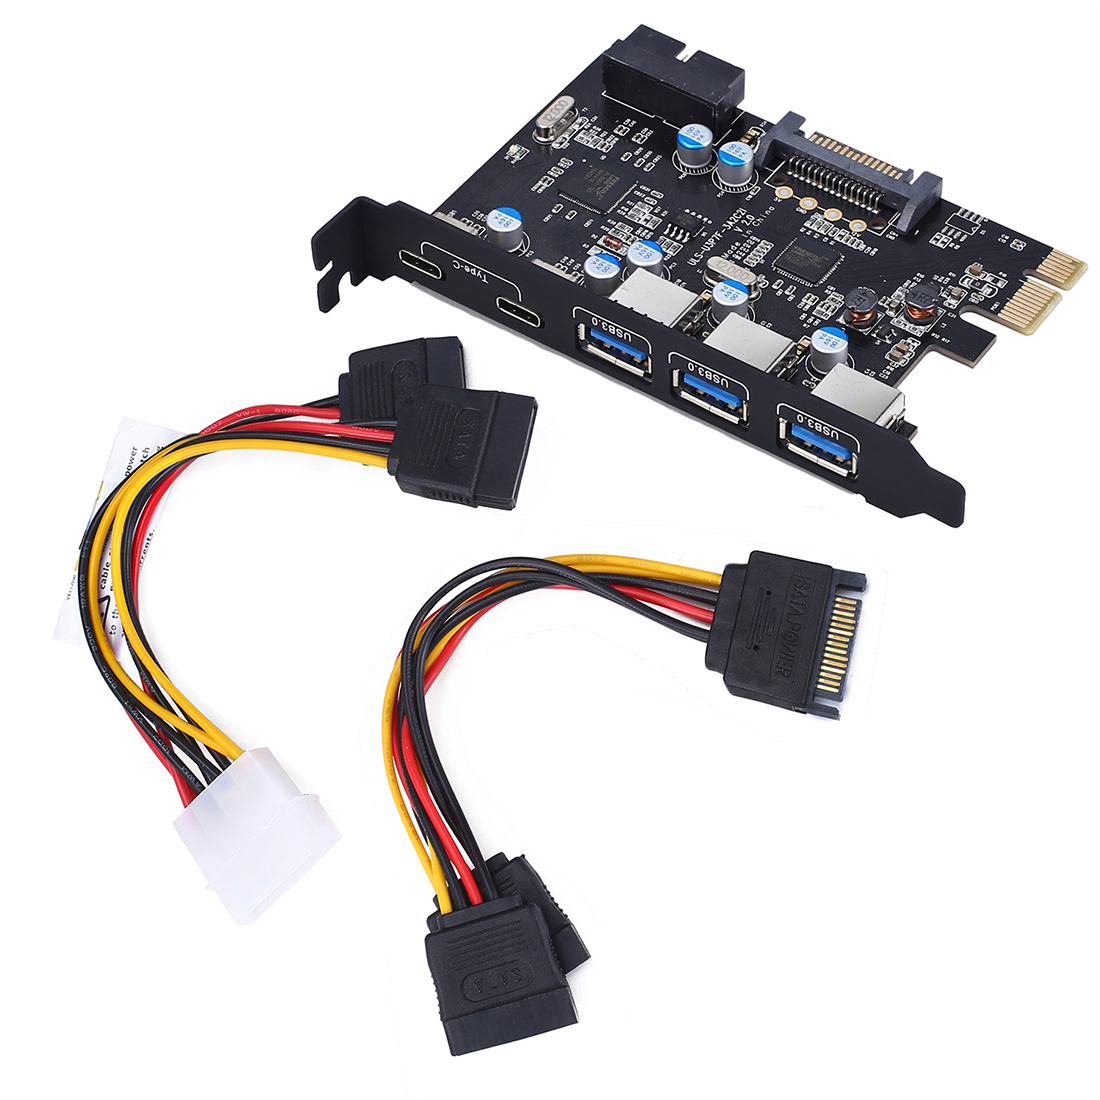 Add On Cards USB 3.0 PCI-E Type C Expansion Card PCI Express Controller Adapter 3x UBS3.0 + 2x USB 3.1 + 4Pin Power 15Pin SATA